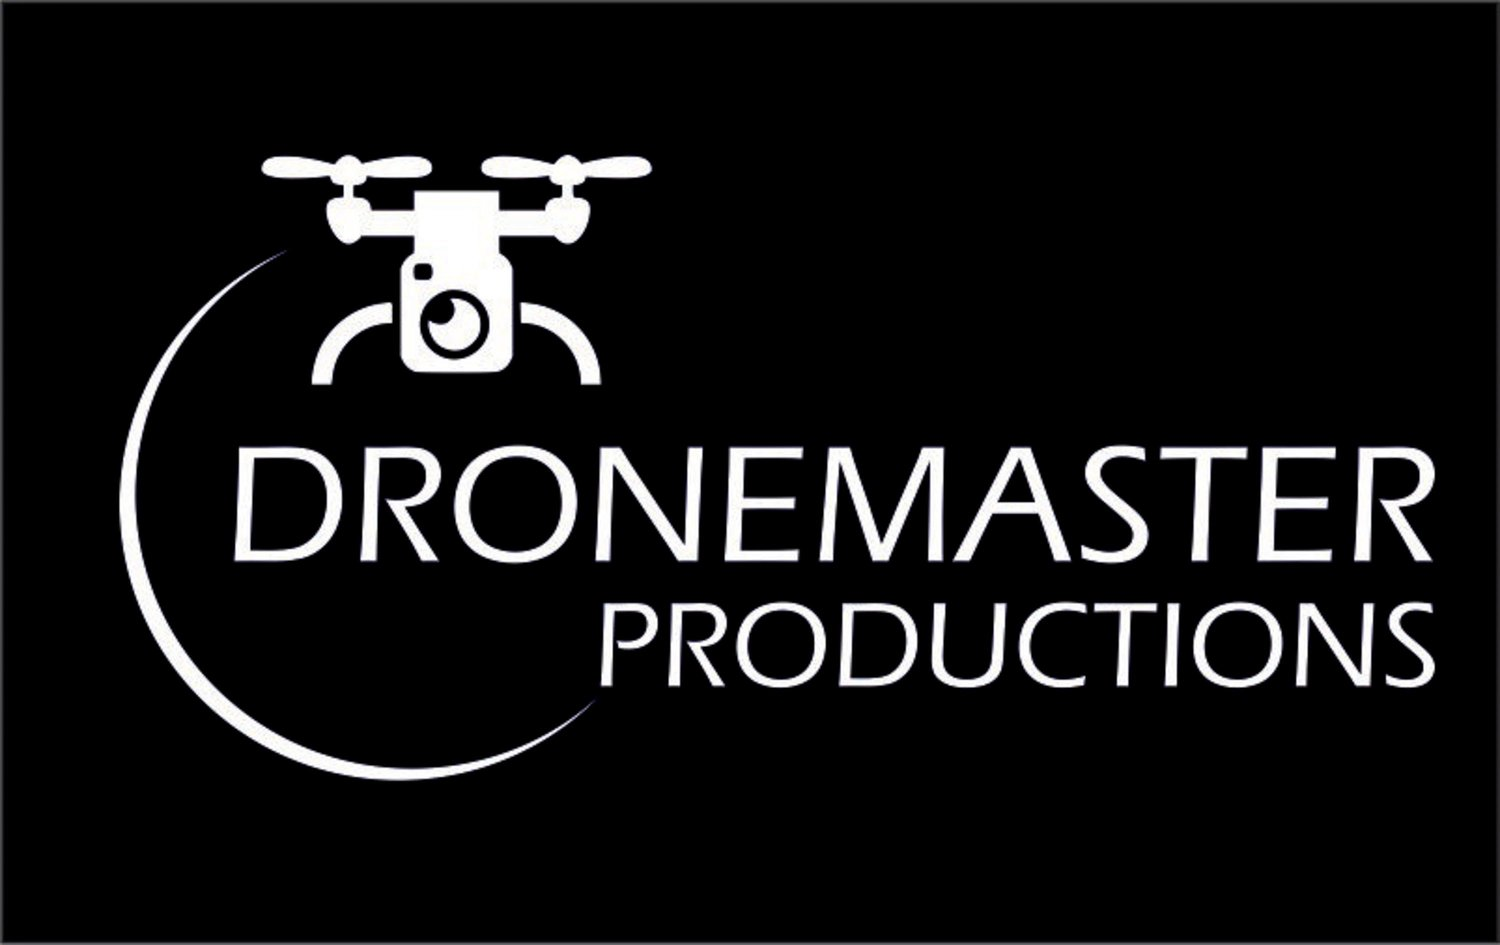 Dronemaster Productions